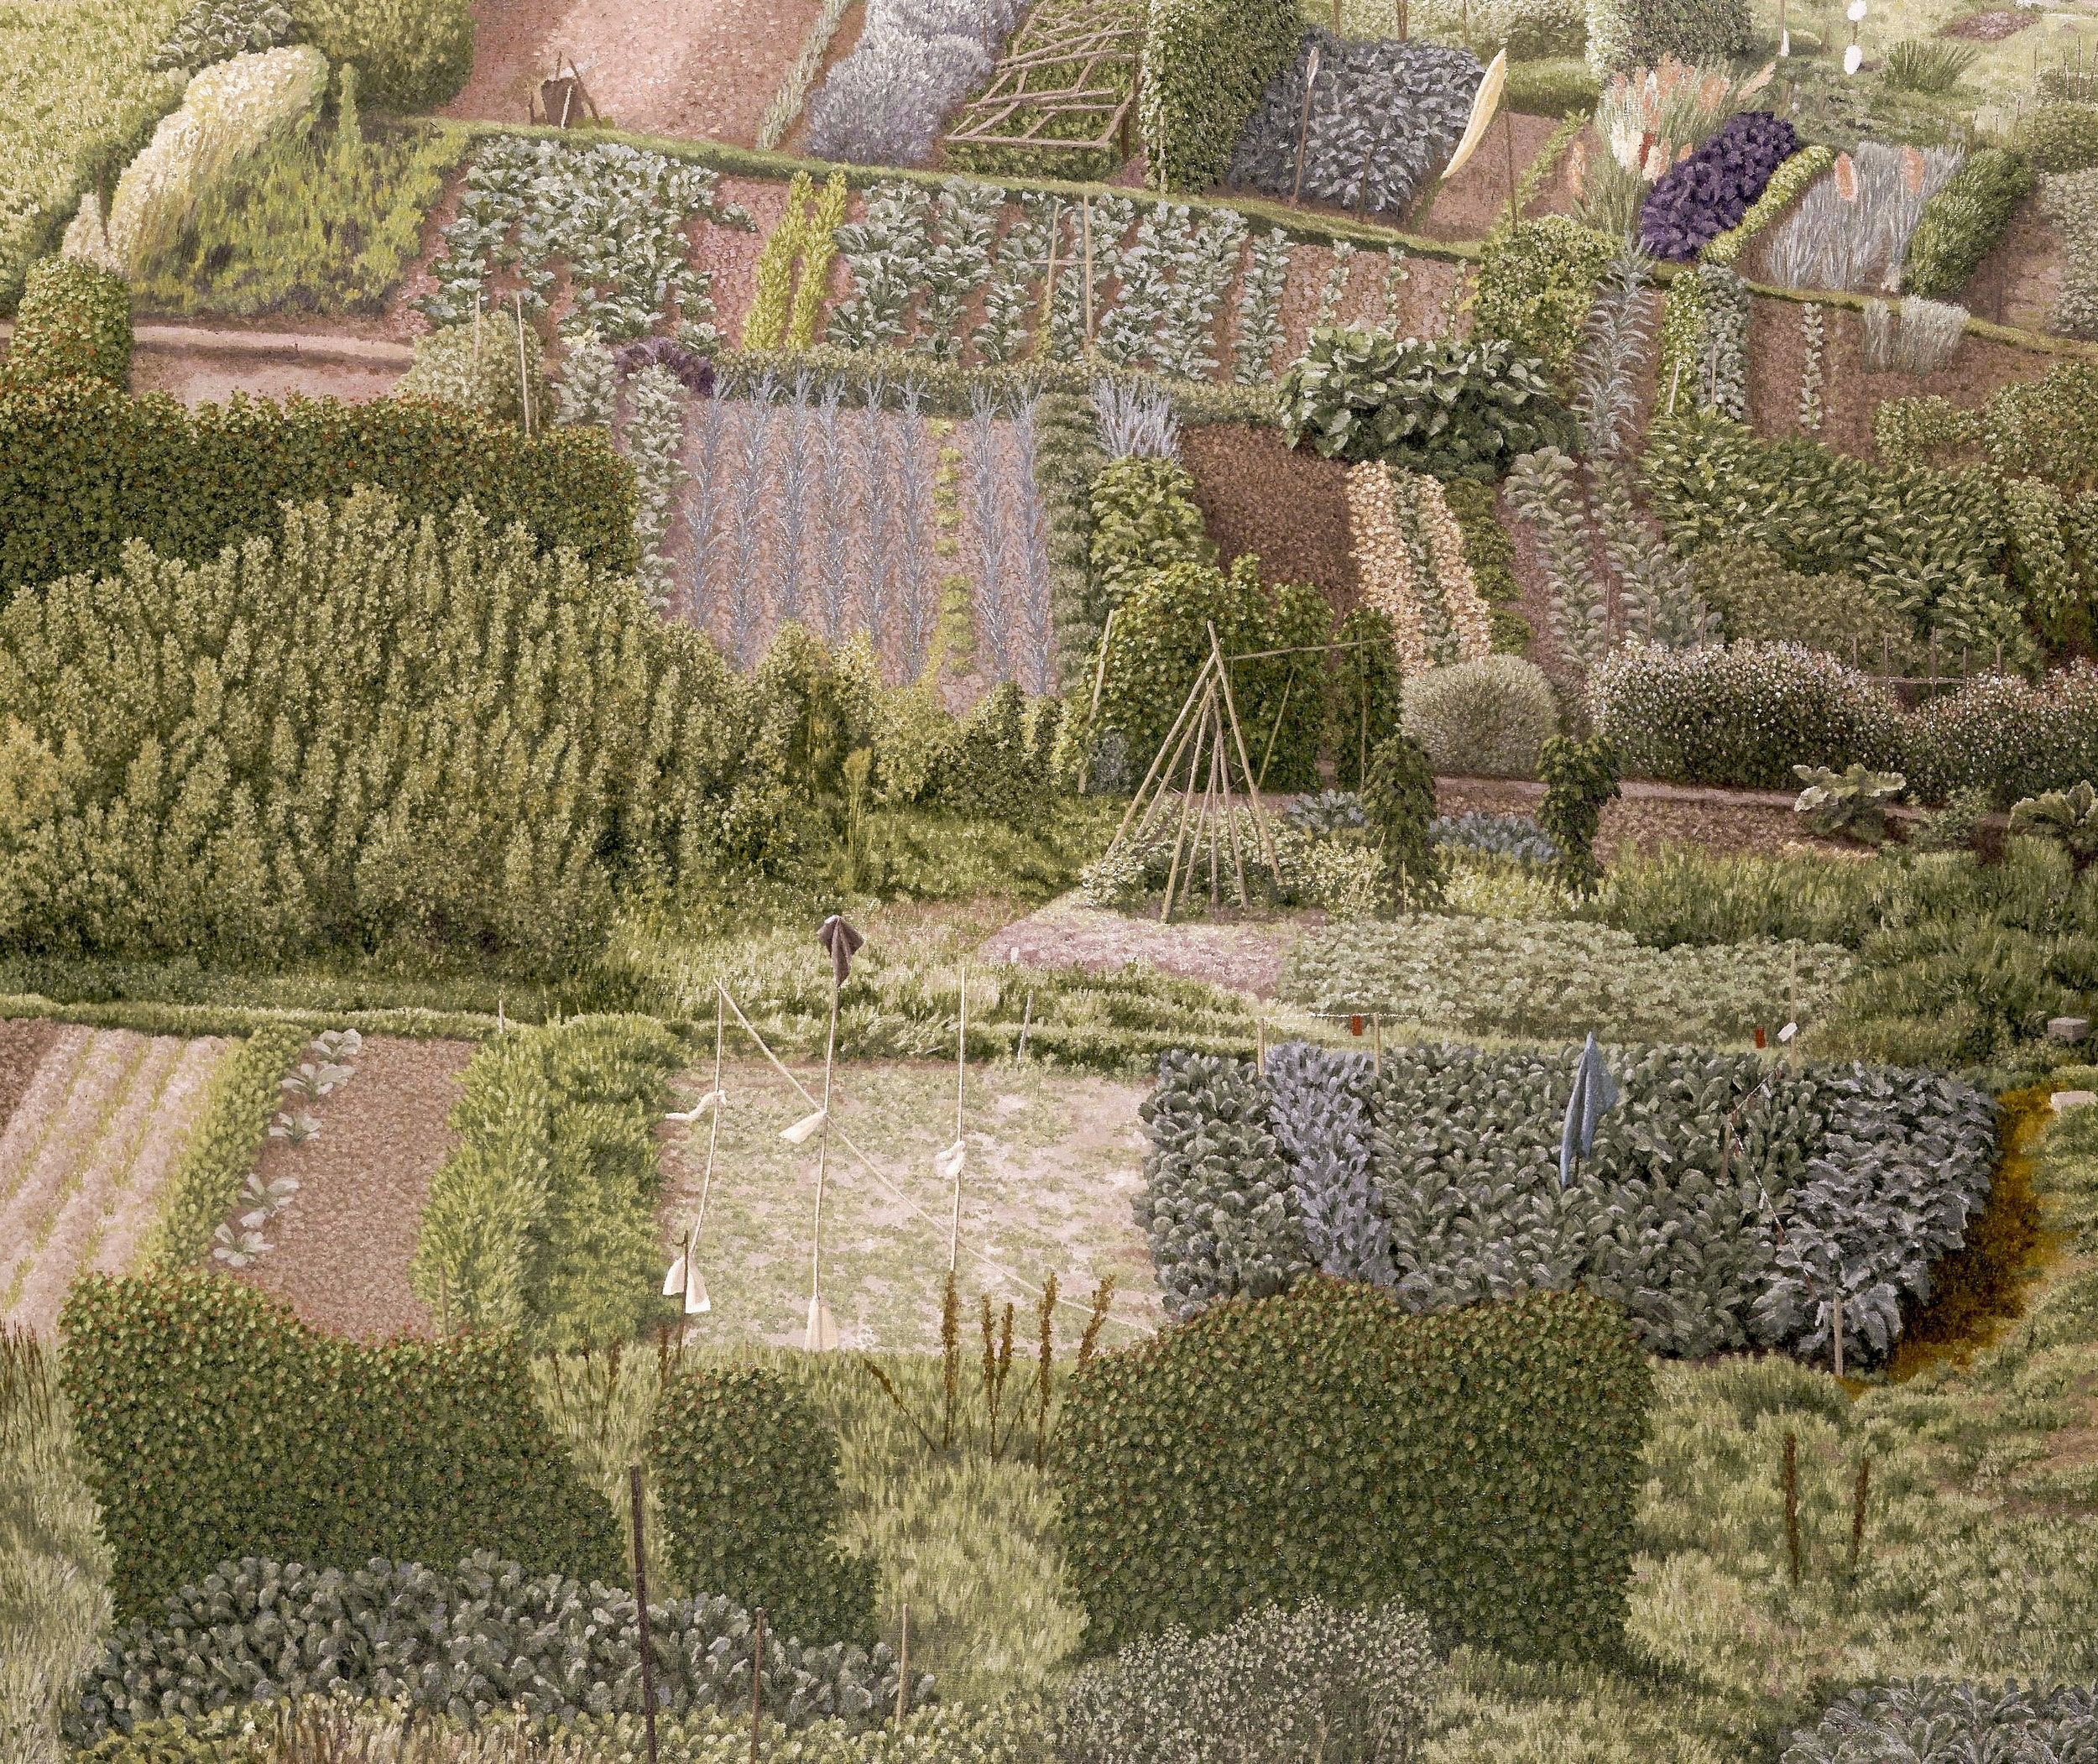 David Inshaw ,  Allotments , 1988. oil on canvas. Courtesy of The Redfern Gallery